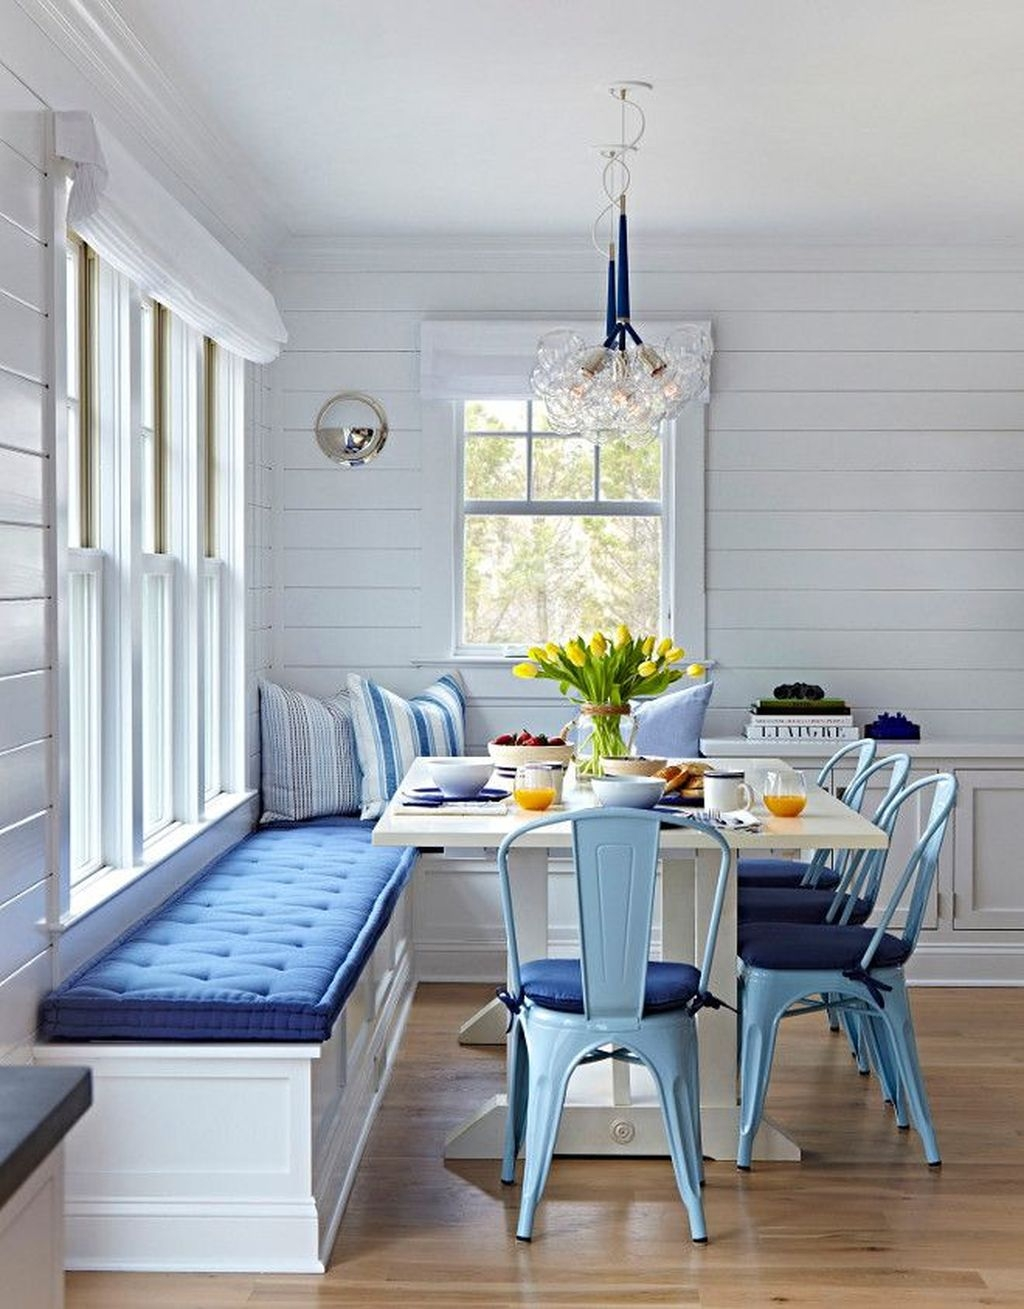 Creative Banquette Seating Ideas For Kitchen04